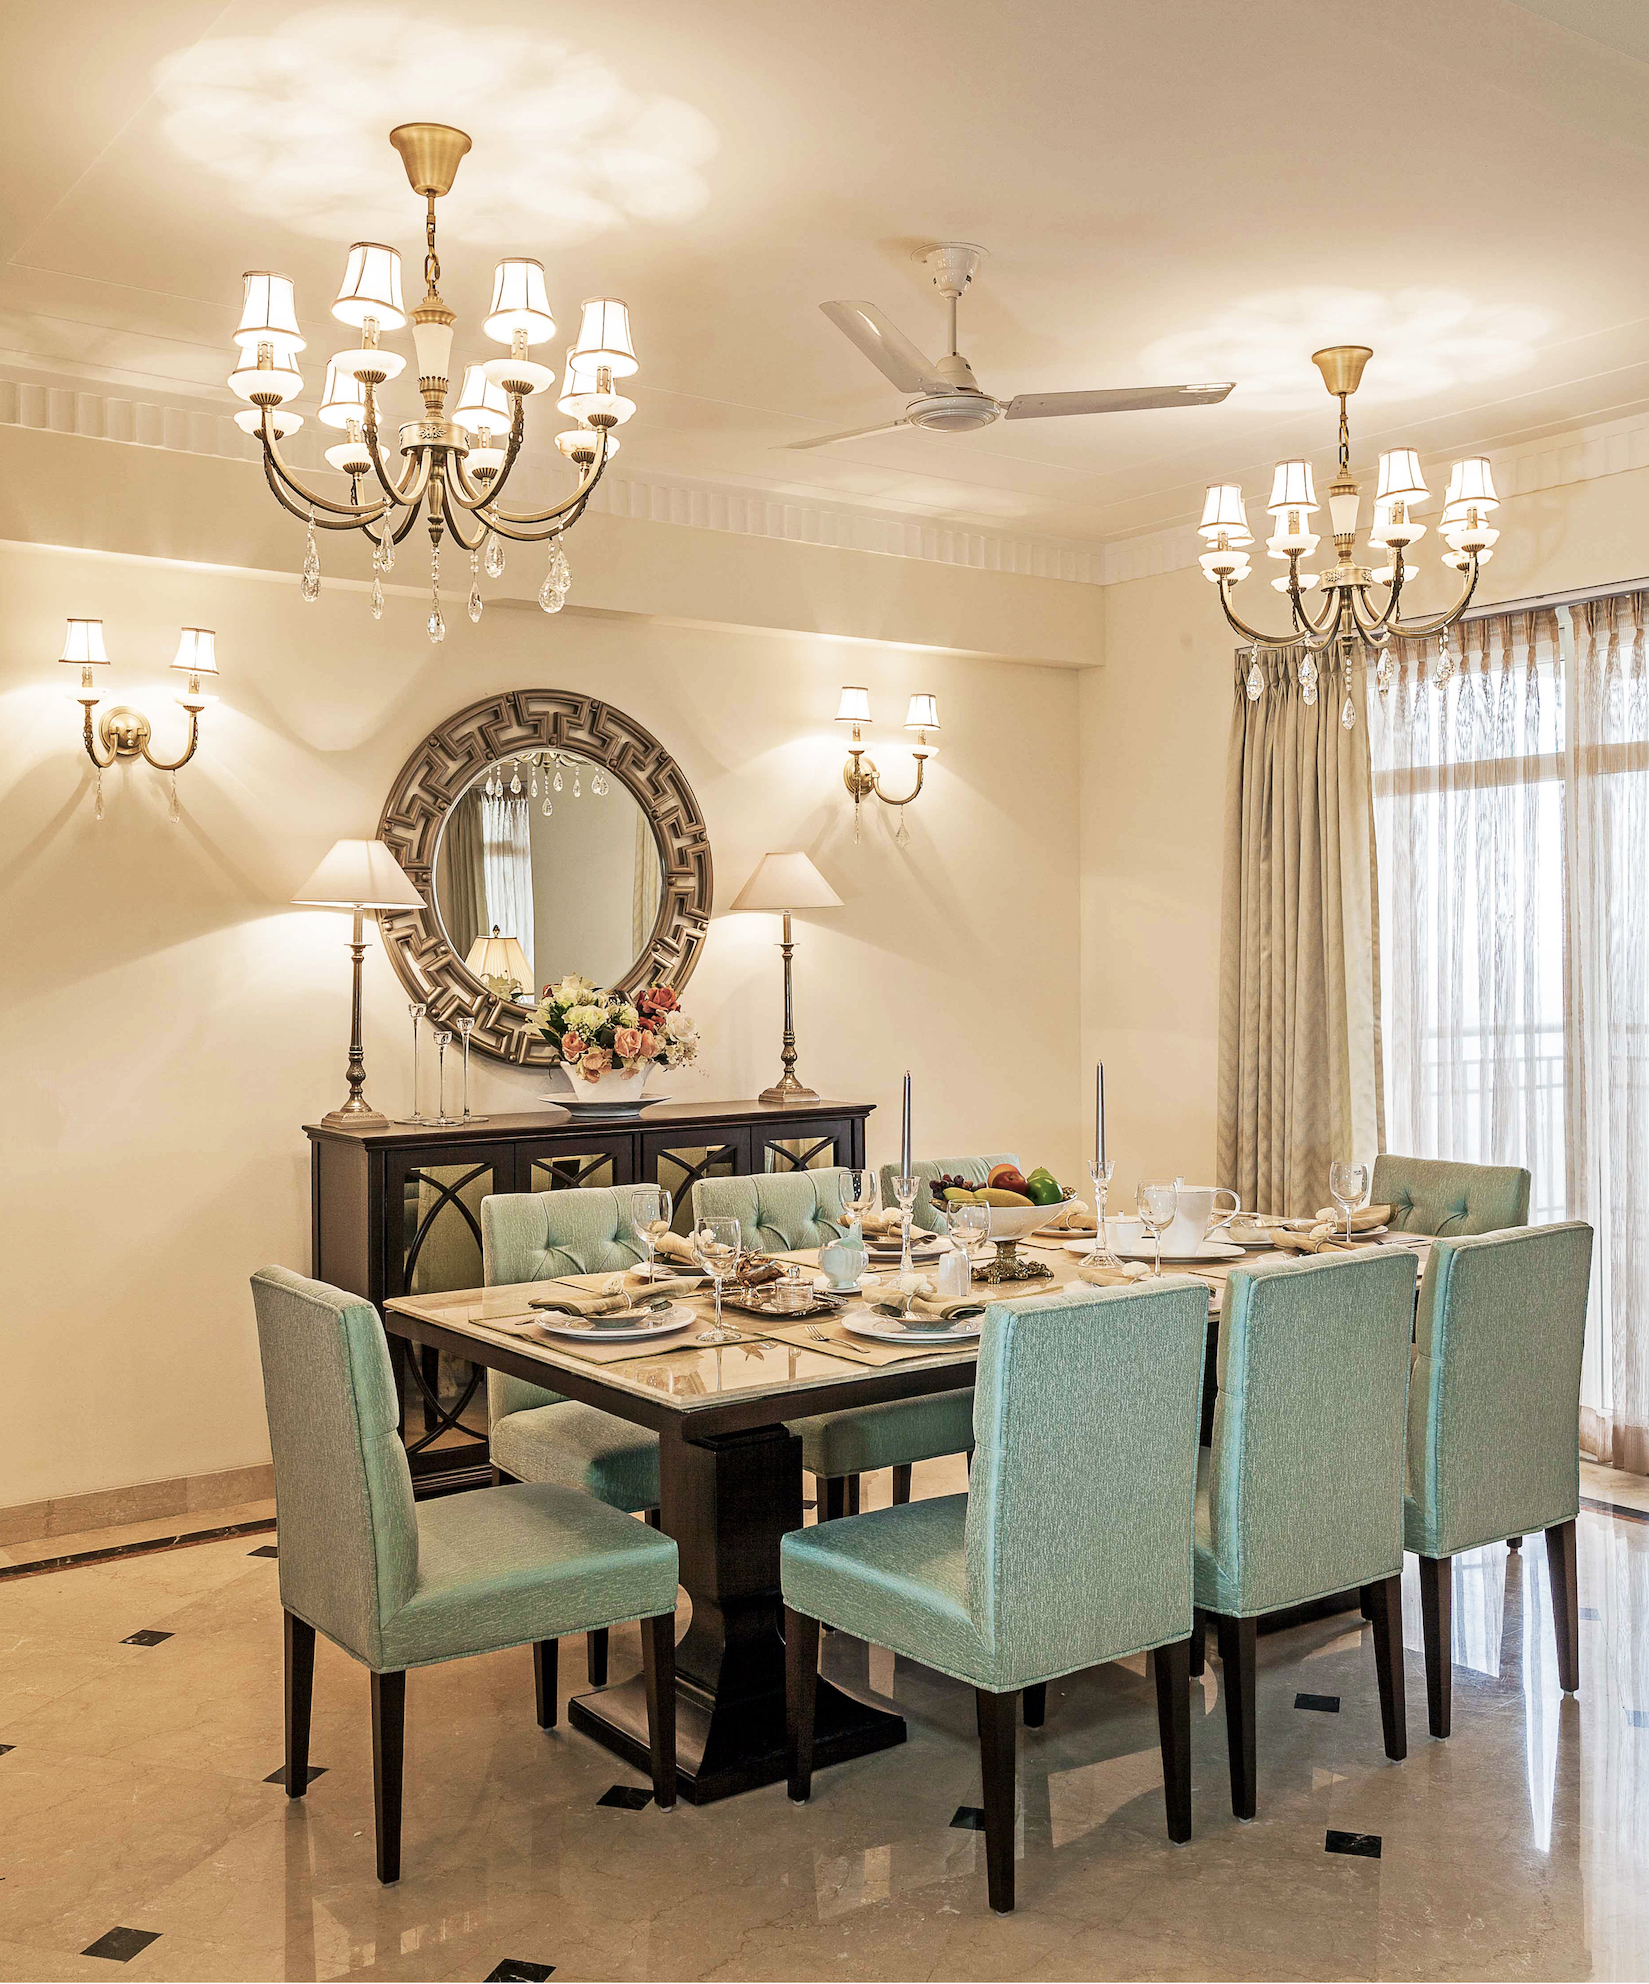 Transitional Dining Room Design Ideas: House Tour: Inside A Delhi 4BHK With Timeless Transitional